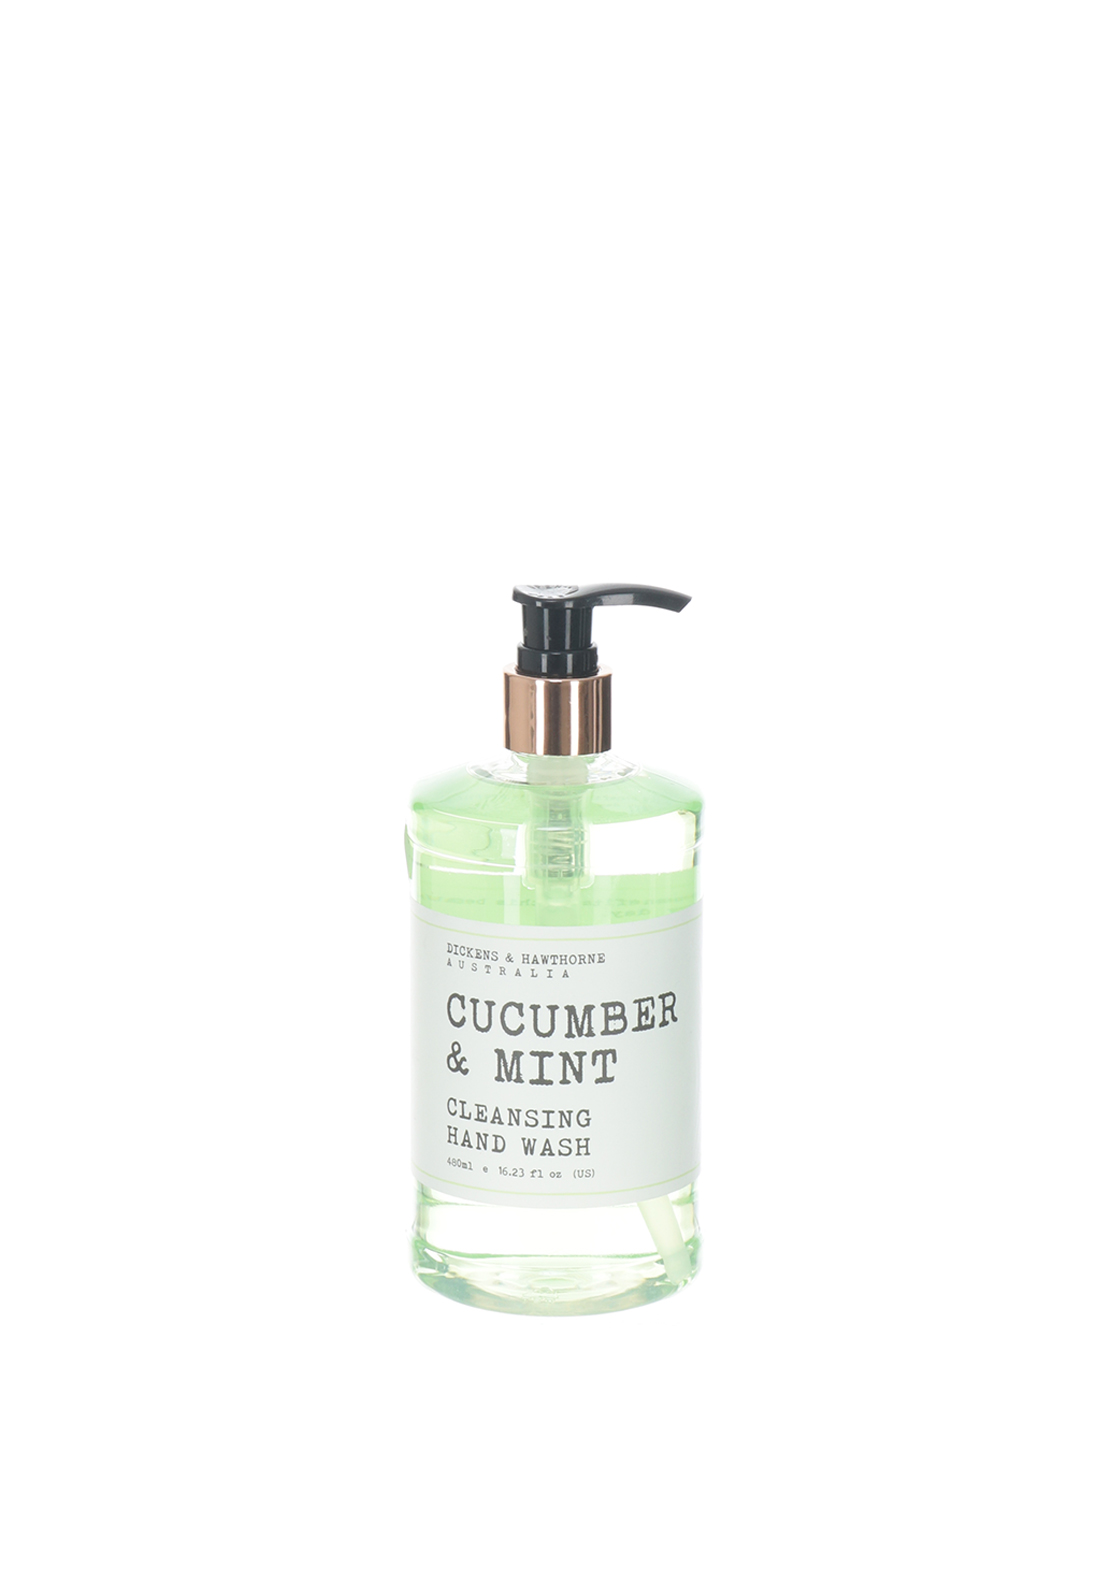 Dickens & Hawthorne Cucumber & Mint Cleansing Hand Wash, 480ml